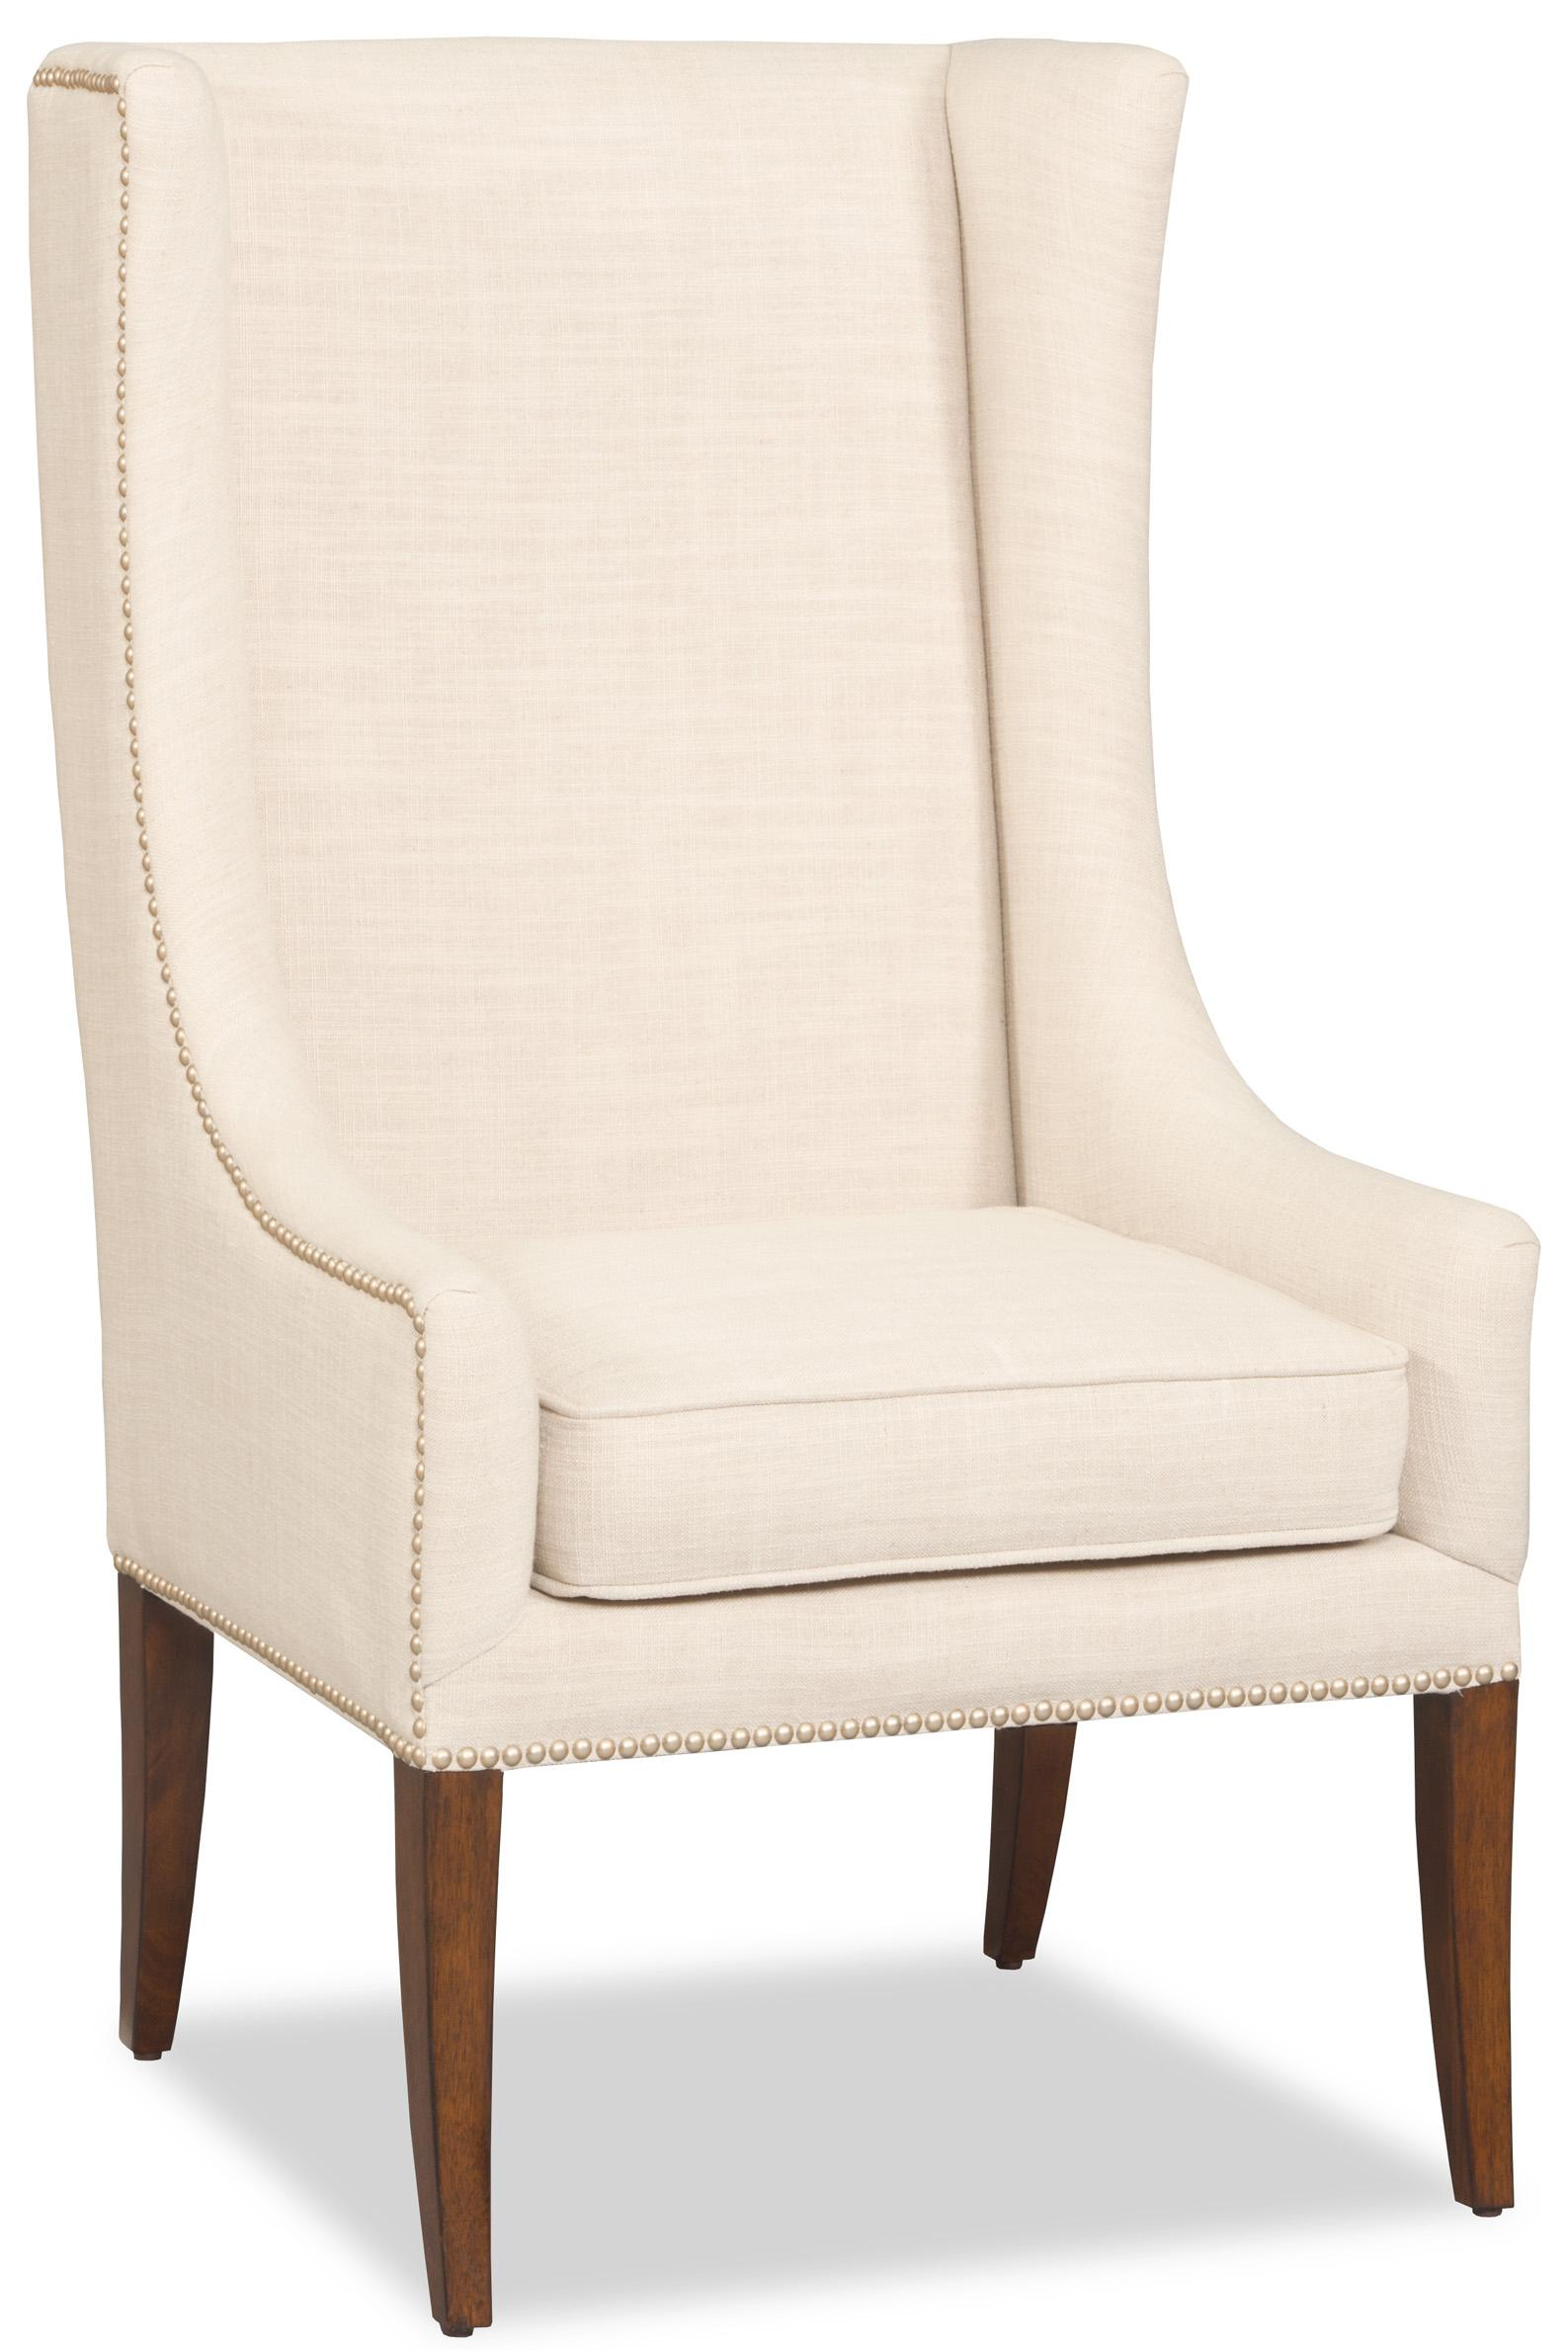 Hamilton Home Accent Chairs Accent Chair - Item Number: 300-350014